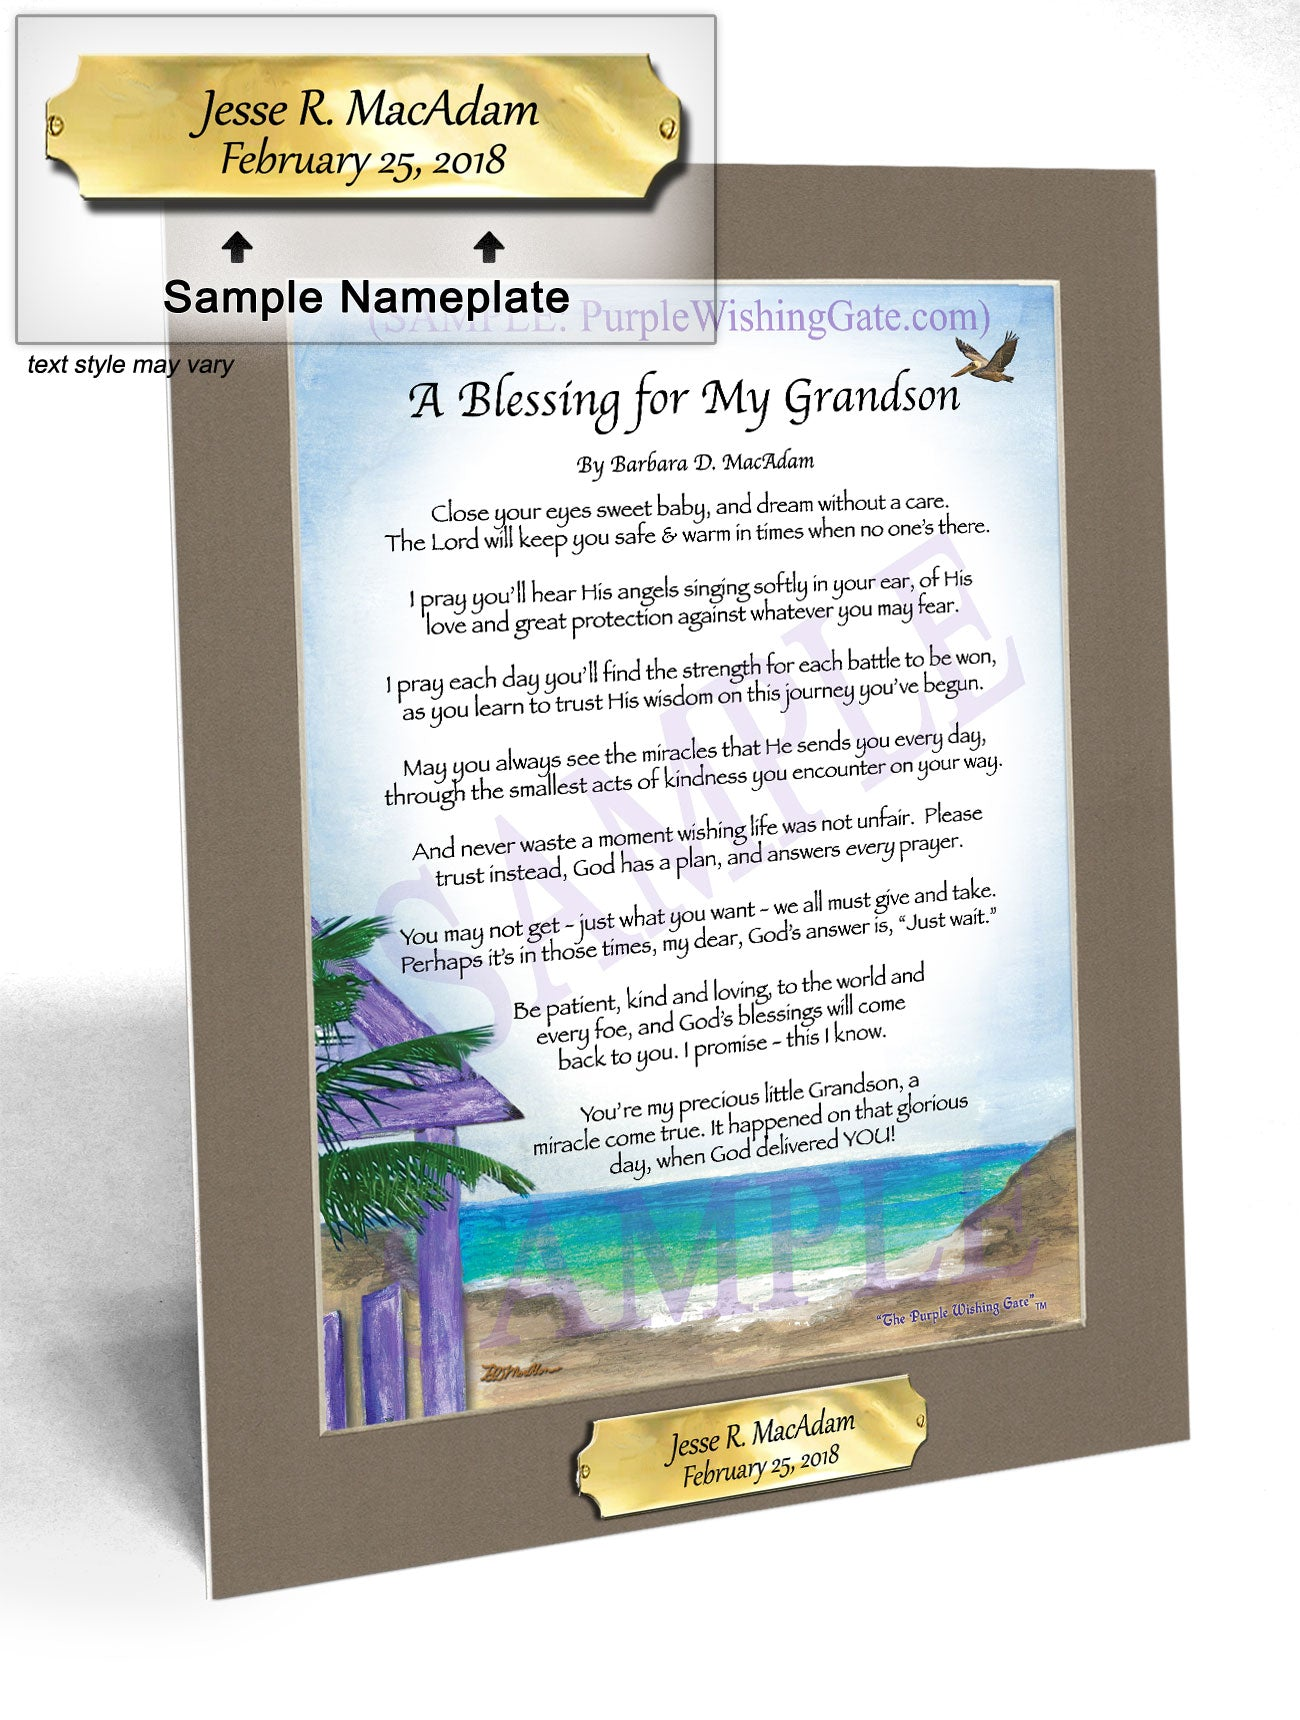 A Blessing for My Grandson (baby) - Baby Gift - PurpleWishingGate.com